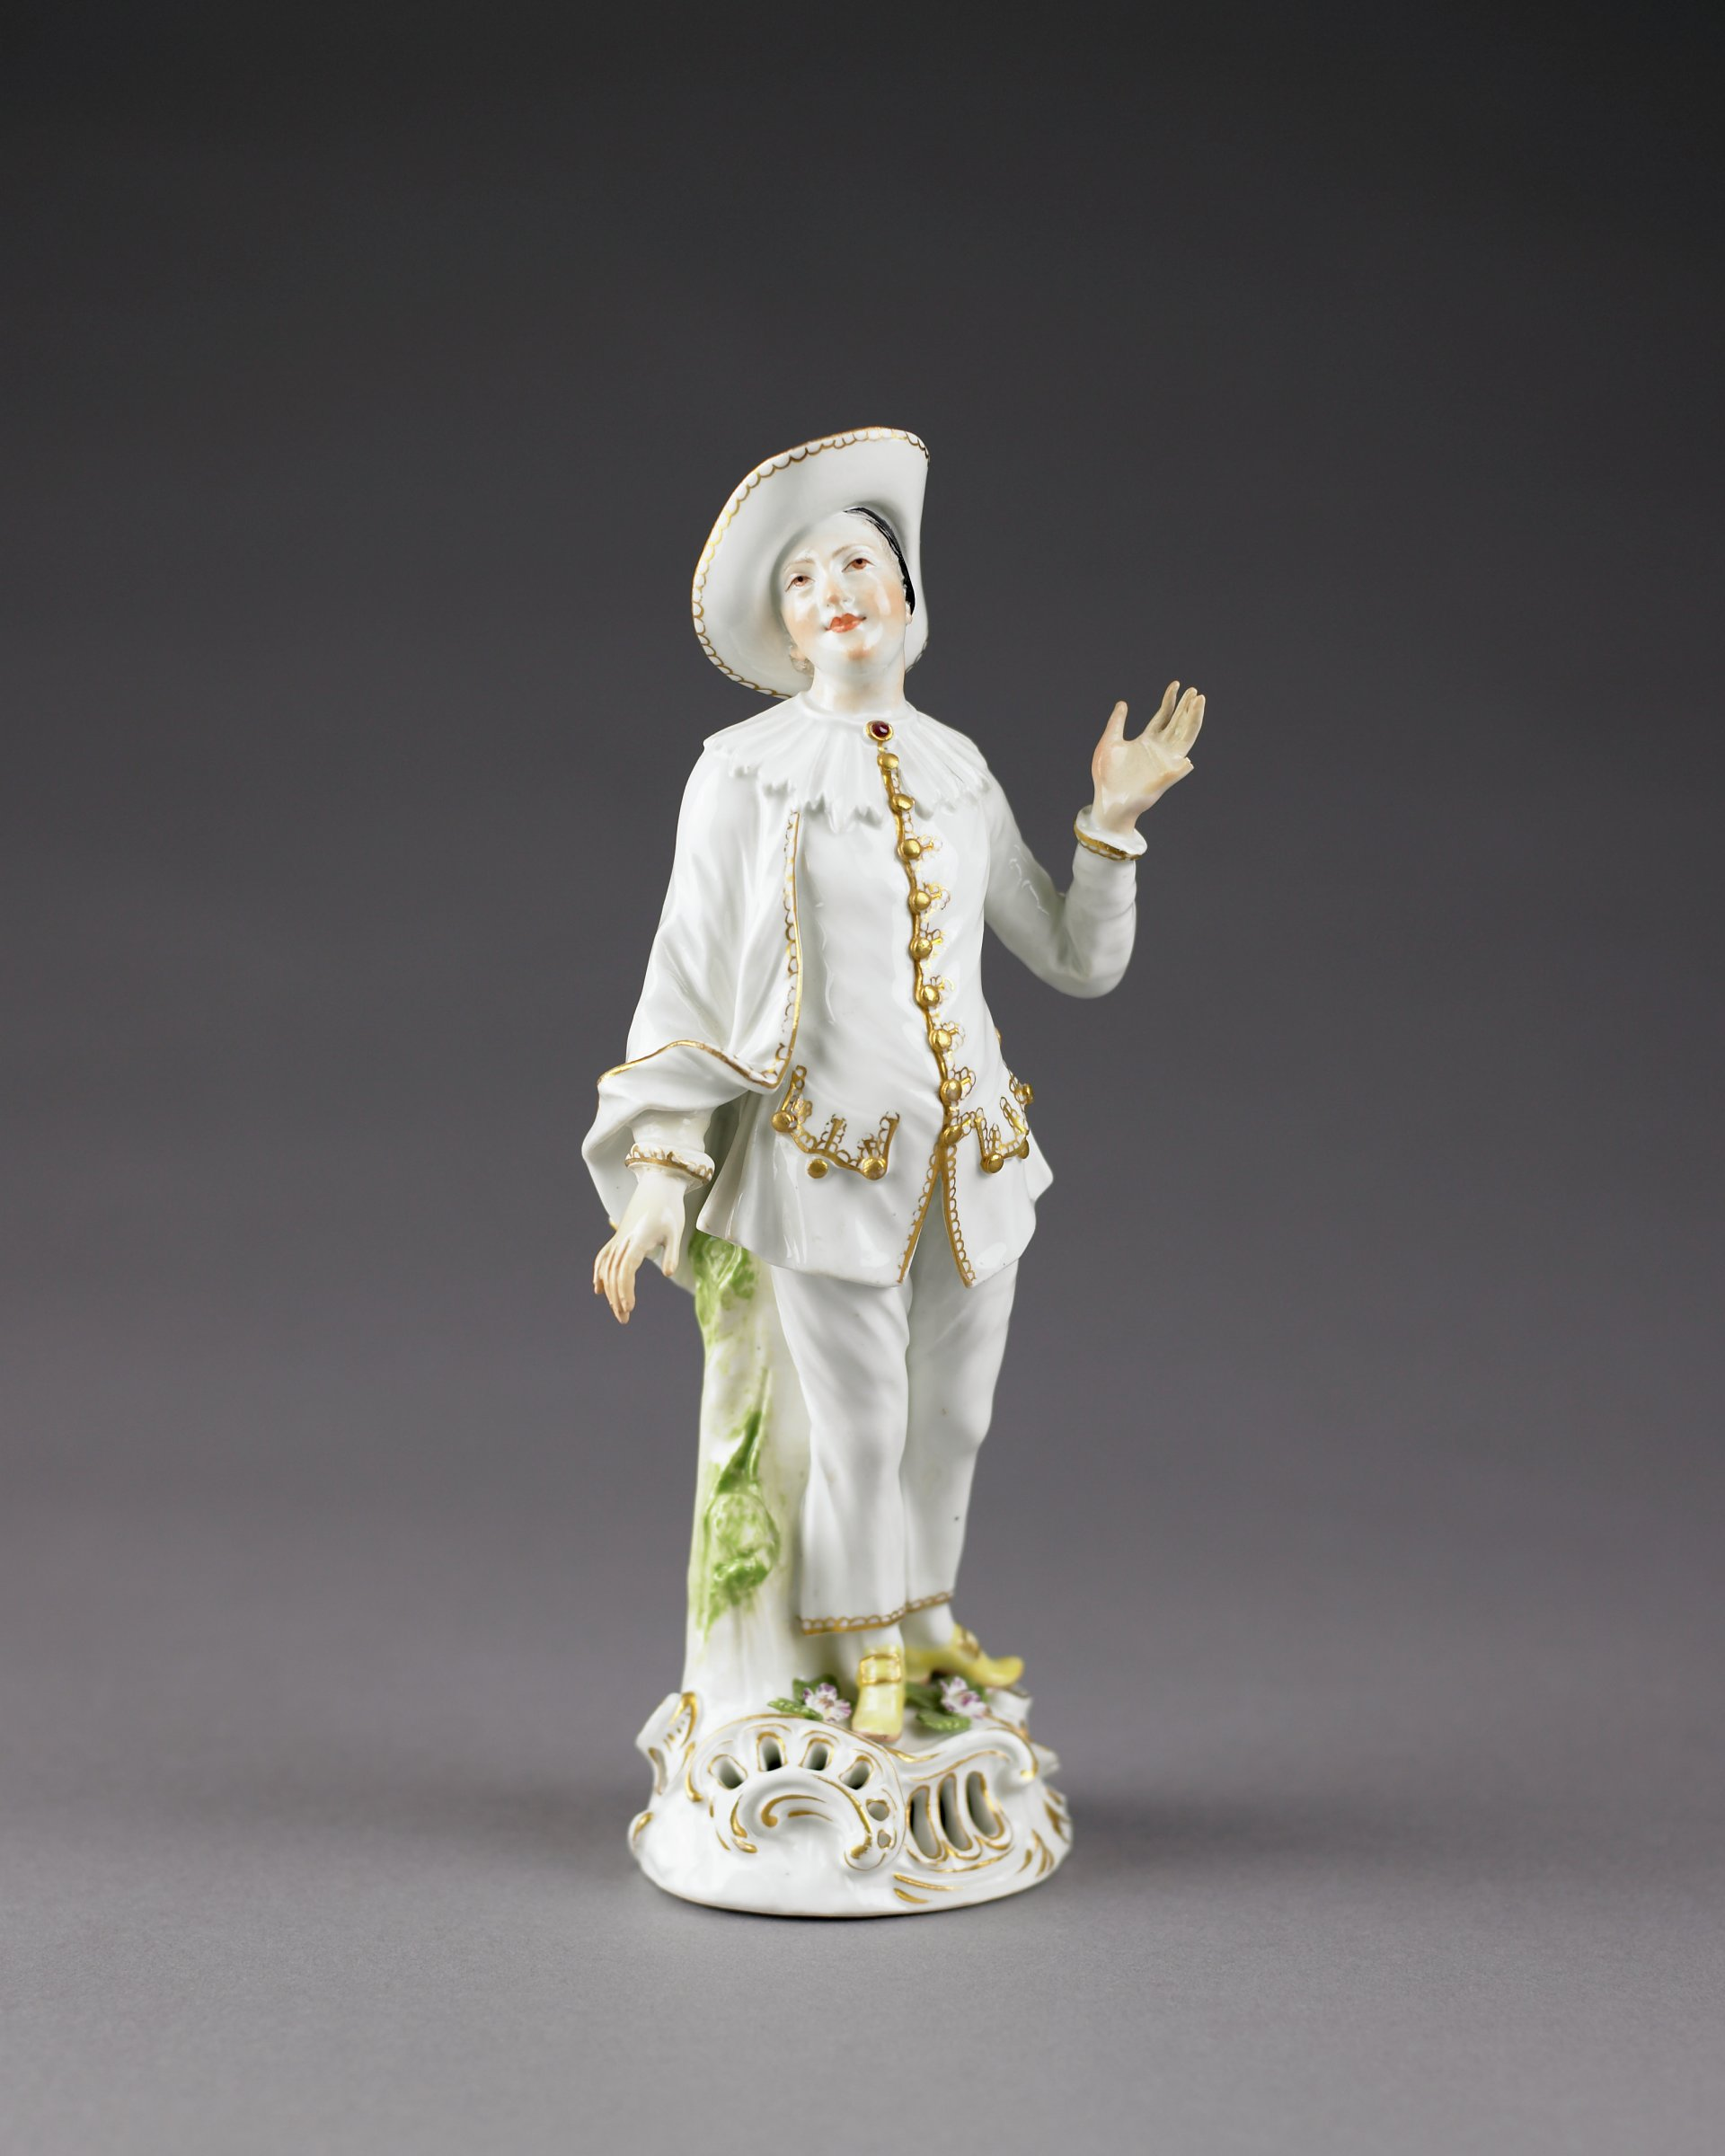 The figure of Pierrot standing on a rocaille base with pierced and gilded scrolls, the base decorated with small applied flowers in lilac with green leaves, Pierrot wears a costume in white consisting of trousers and a jacket trimmed in gold, with a ruffle collar, and a large hat with the brim rolled up on the left side, his left hand is raised, palm up and open, the right arm is lowered at his side, the shoes are yellow with gilt buckles